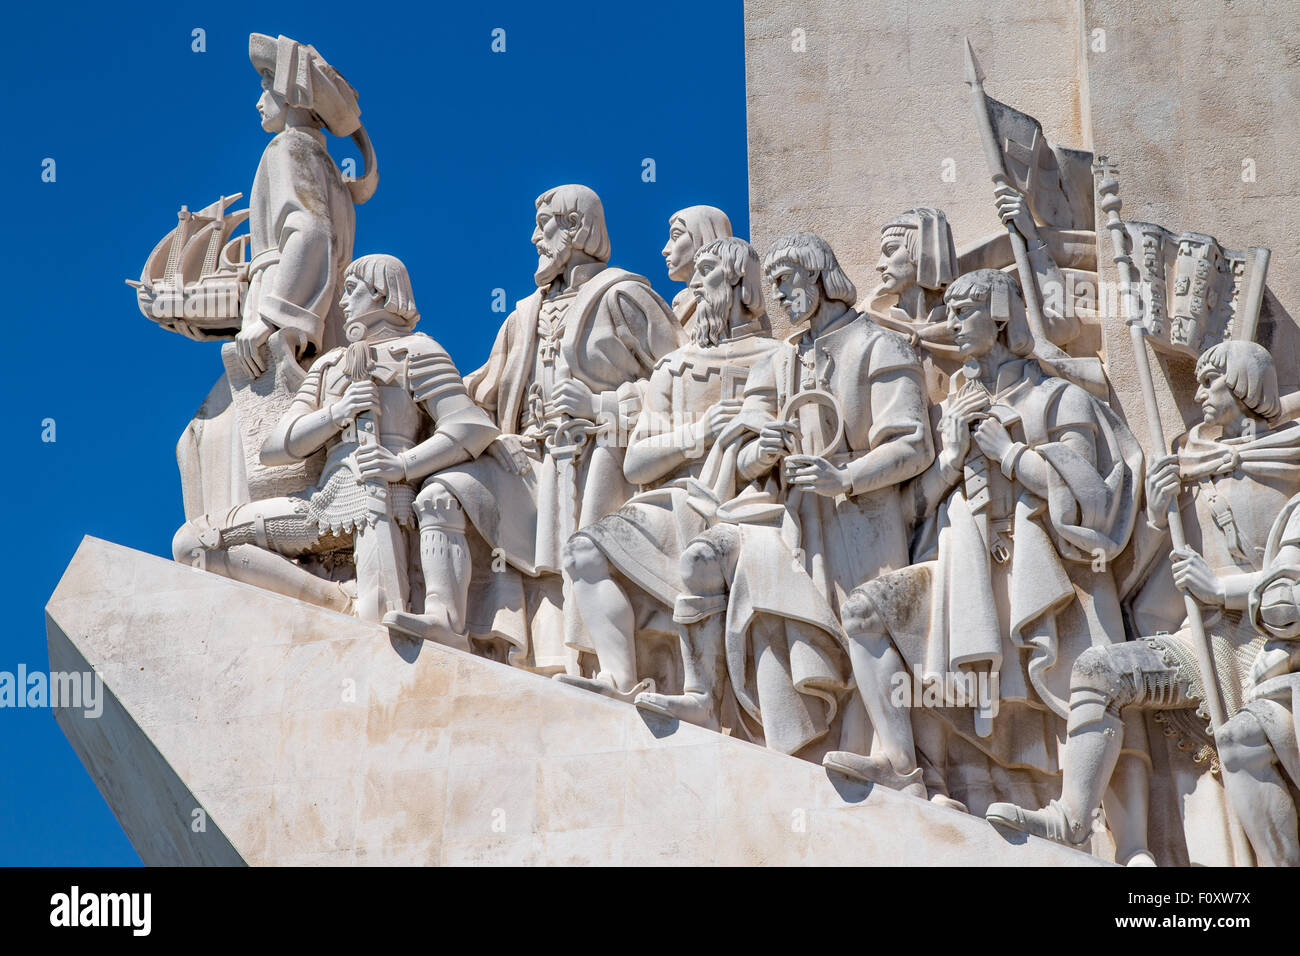 Statues of explorers on the Padrao dos Descobrimentos, the discoveries monument at Belem, Lisbon, Portugal - Stock Image